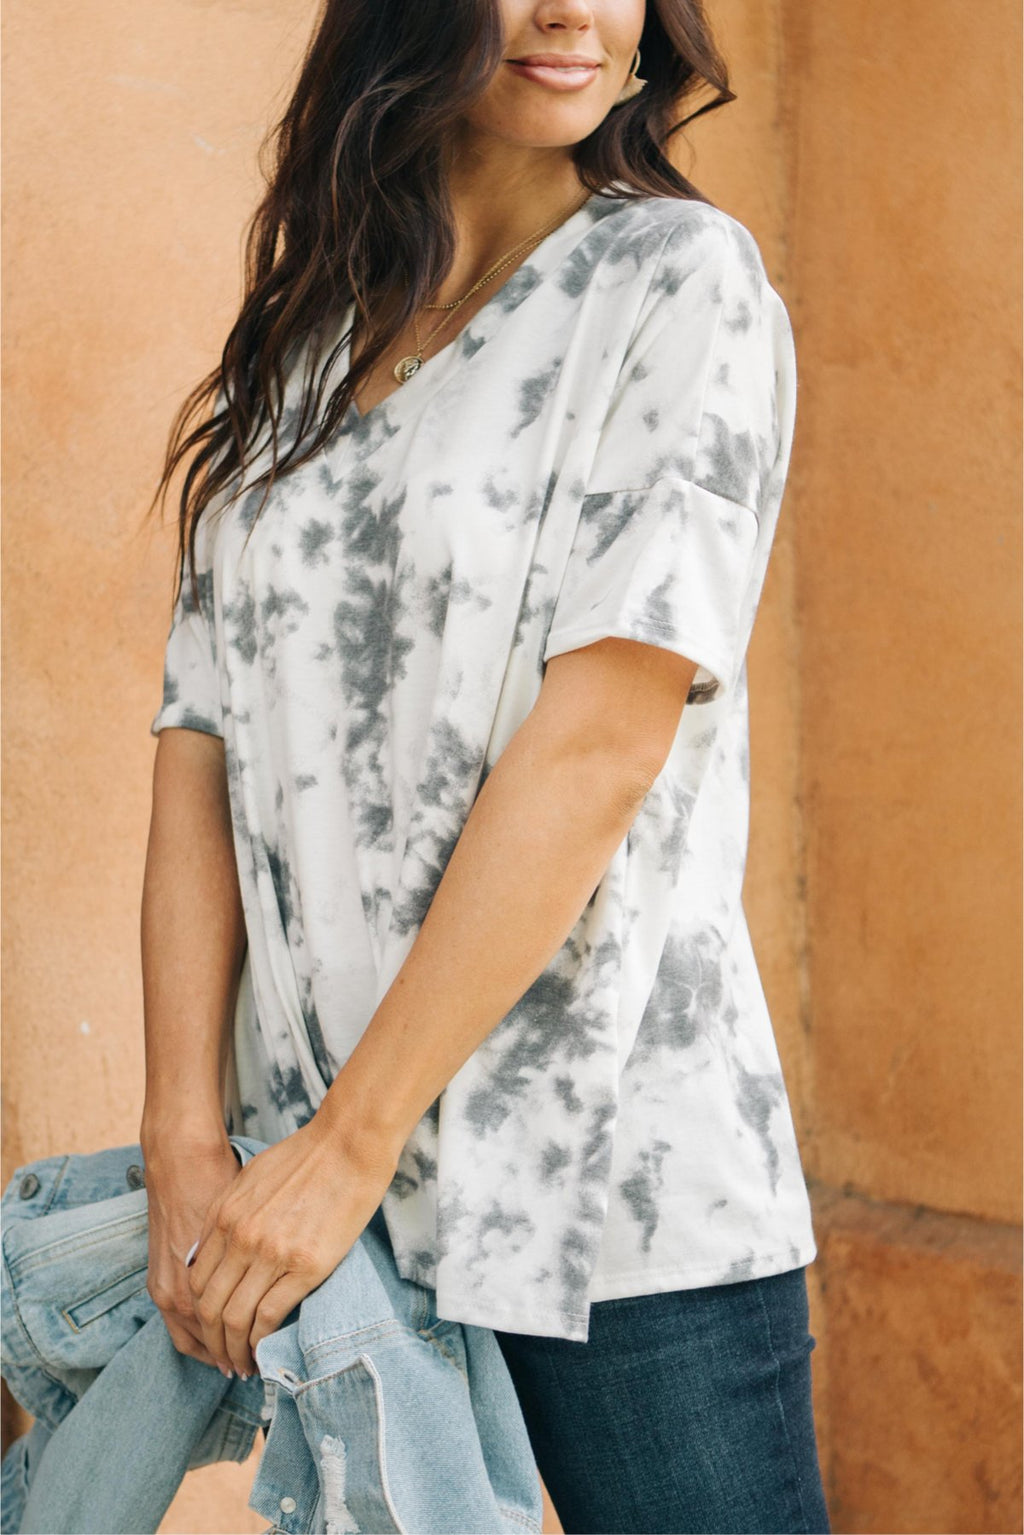 Washed Away Top-1XL, 2XL, 3XL, 9-29-2020, BFCM2020, Group A, Group B, Group C, Group D, Group S, Group U, Group X, Group Y, Group Z, Large, Made in the USA, Medium, Plus, Small, Tops, XL, XS-Womens Artisan USA American Made Clothing Accessories